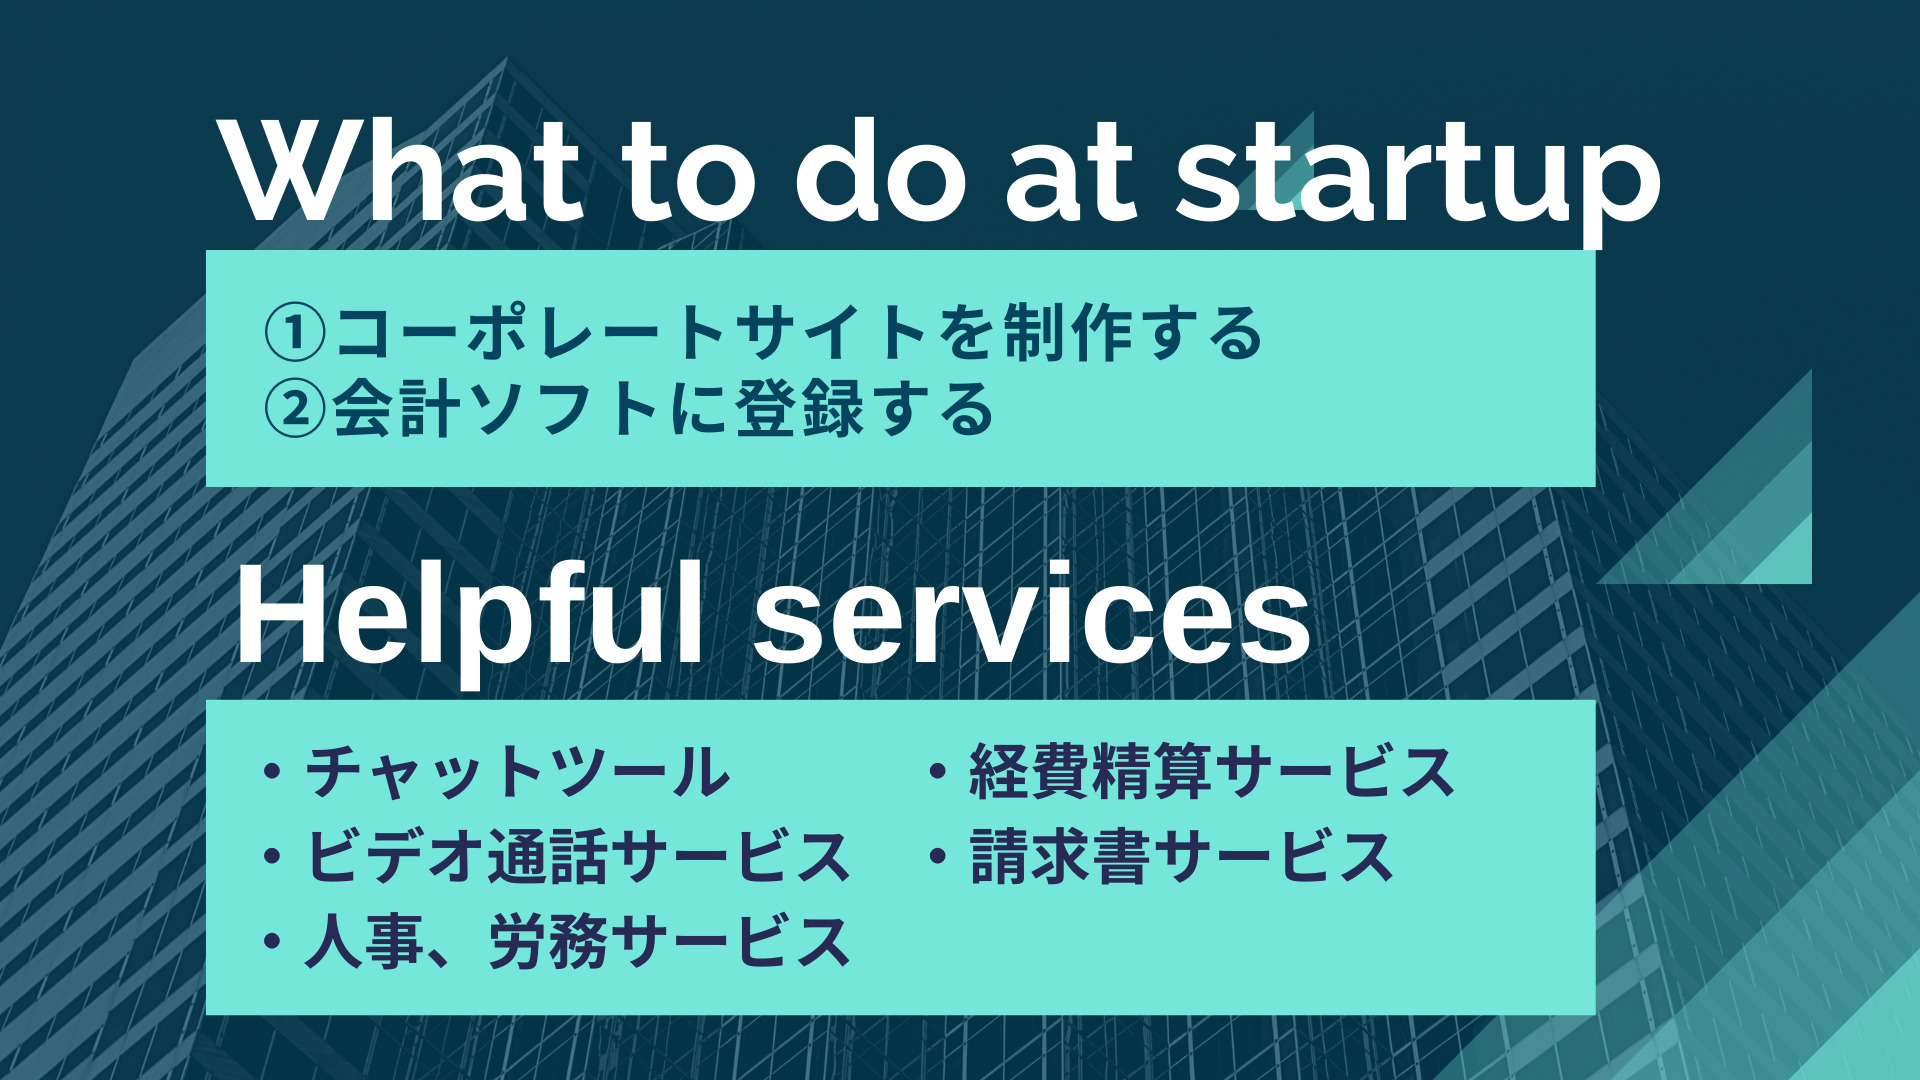 What to do at startup